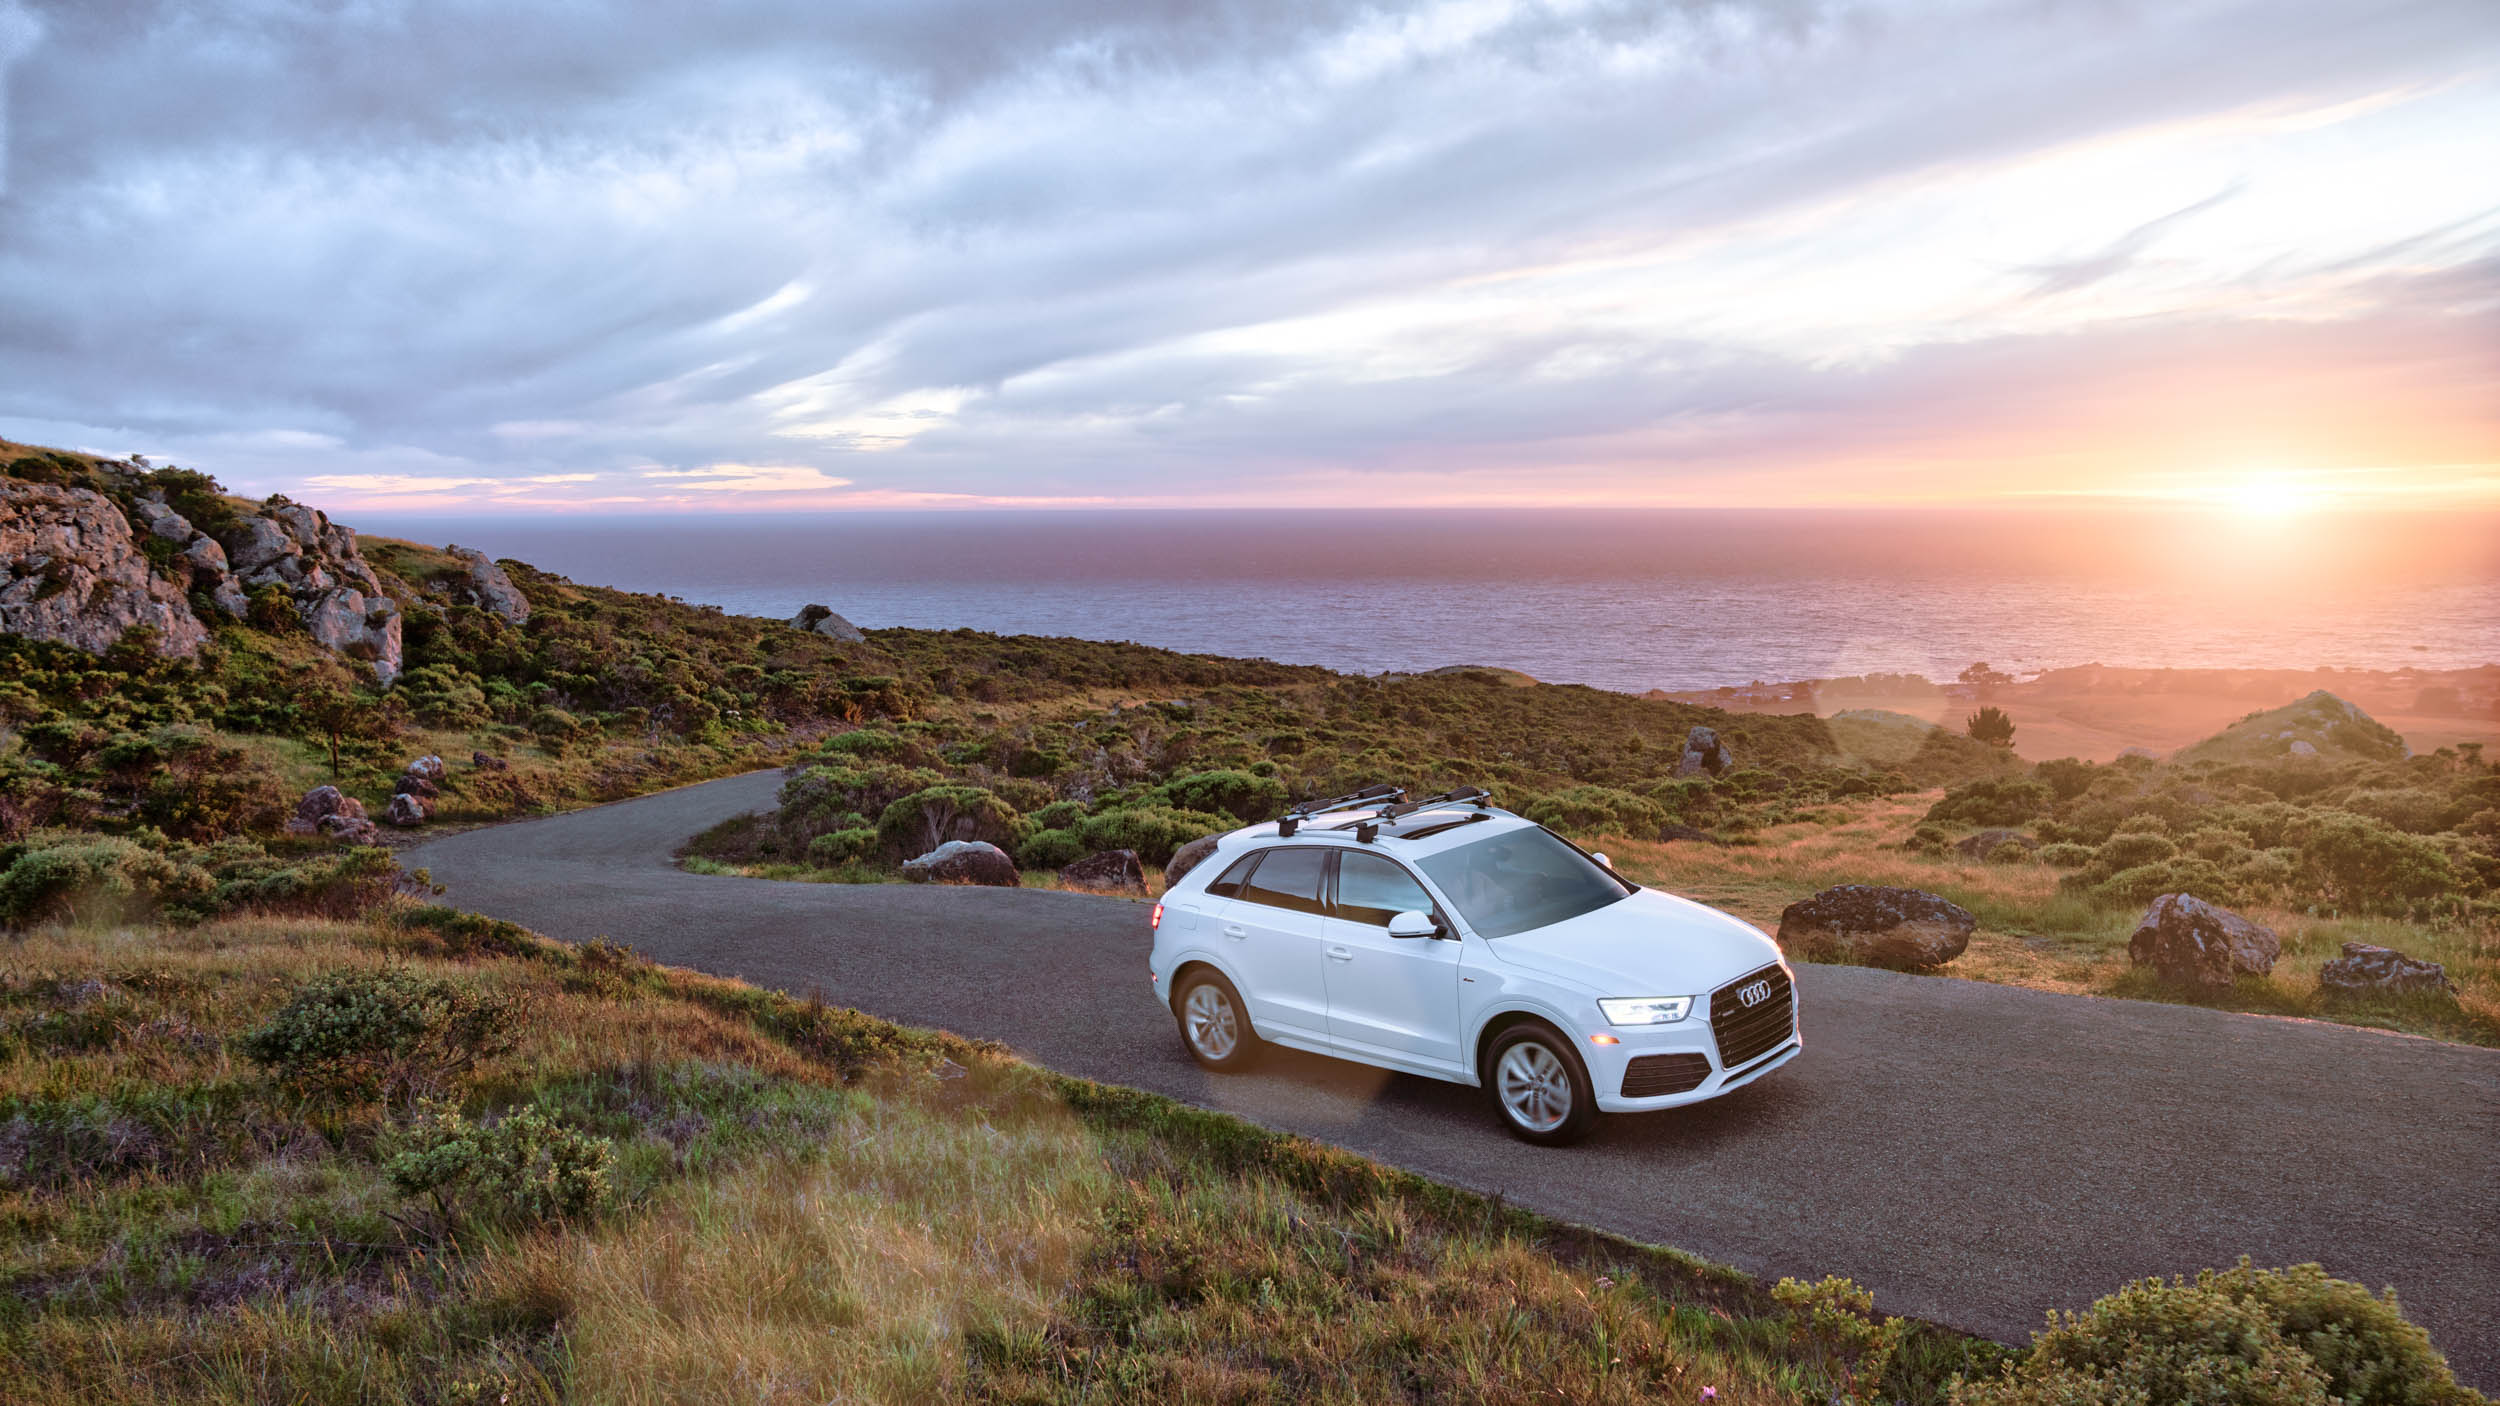 White Audi Q3 drives up curvy coastal road with sun setting over the Pacific Ocean